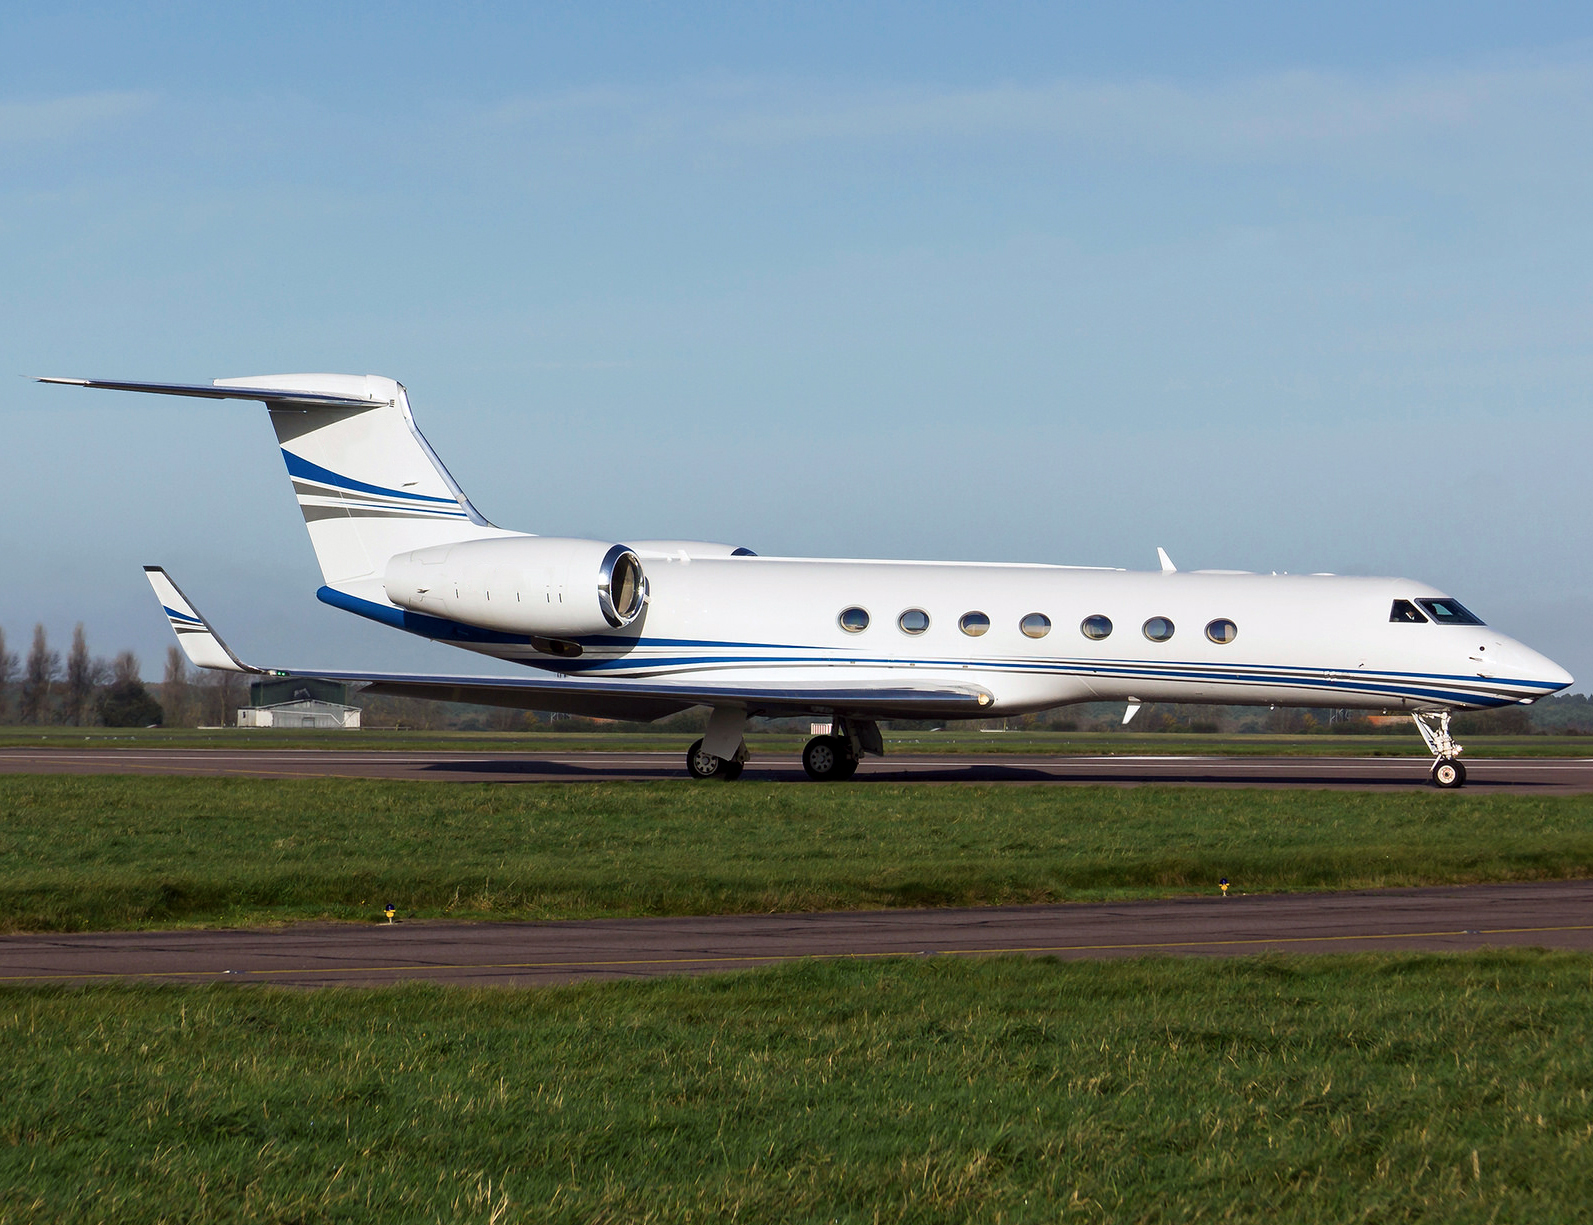 Aircraft Listing - Gulfstream G500 listed for sale